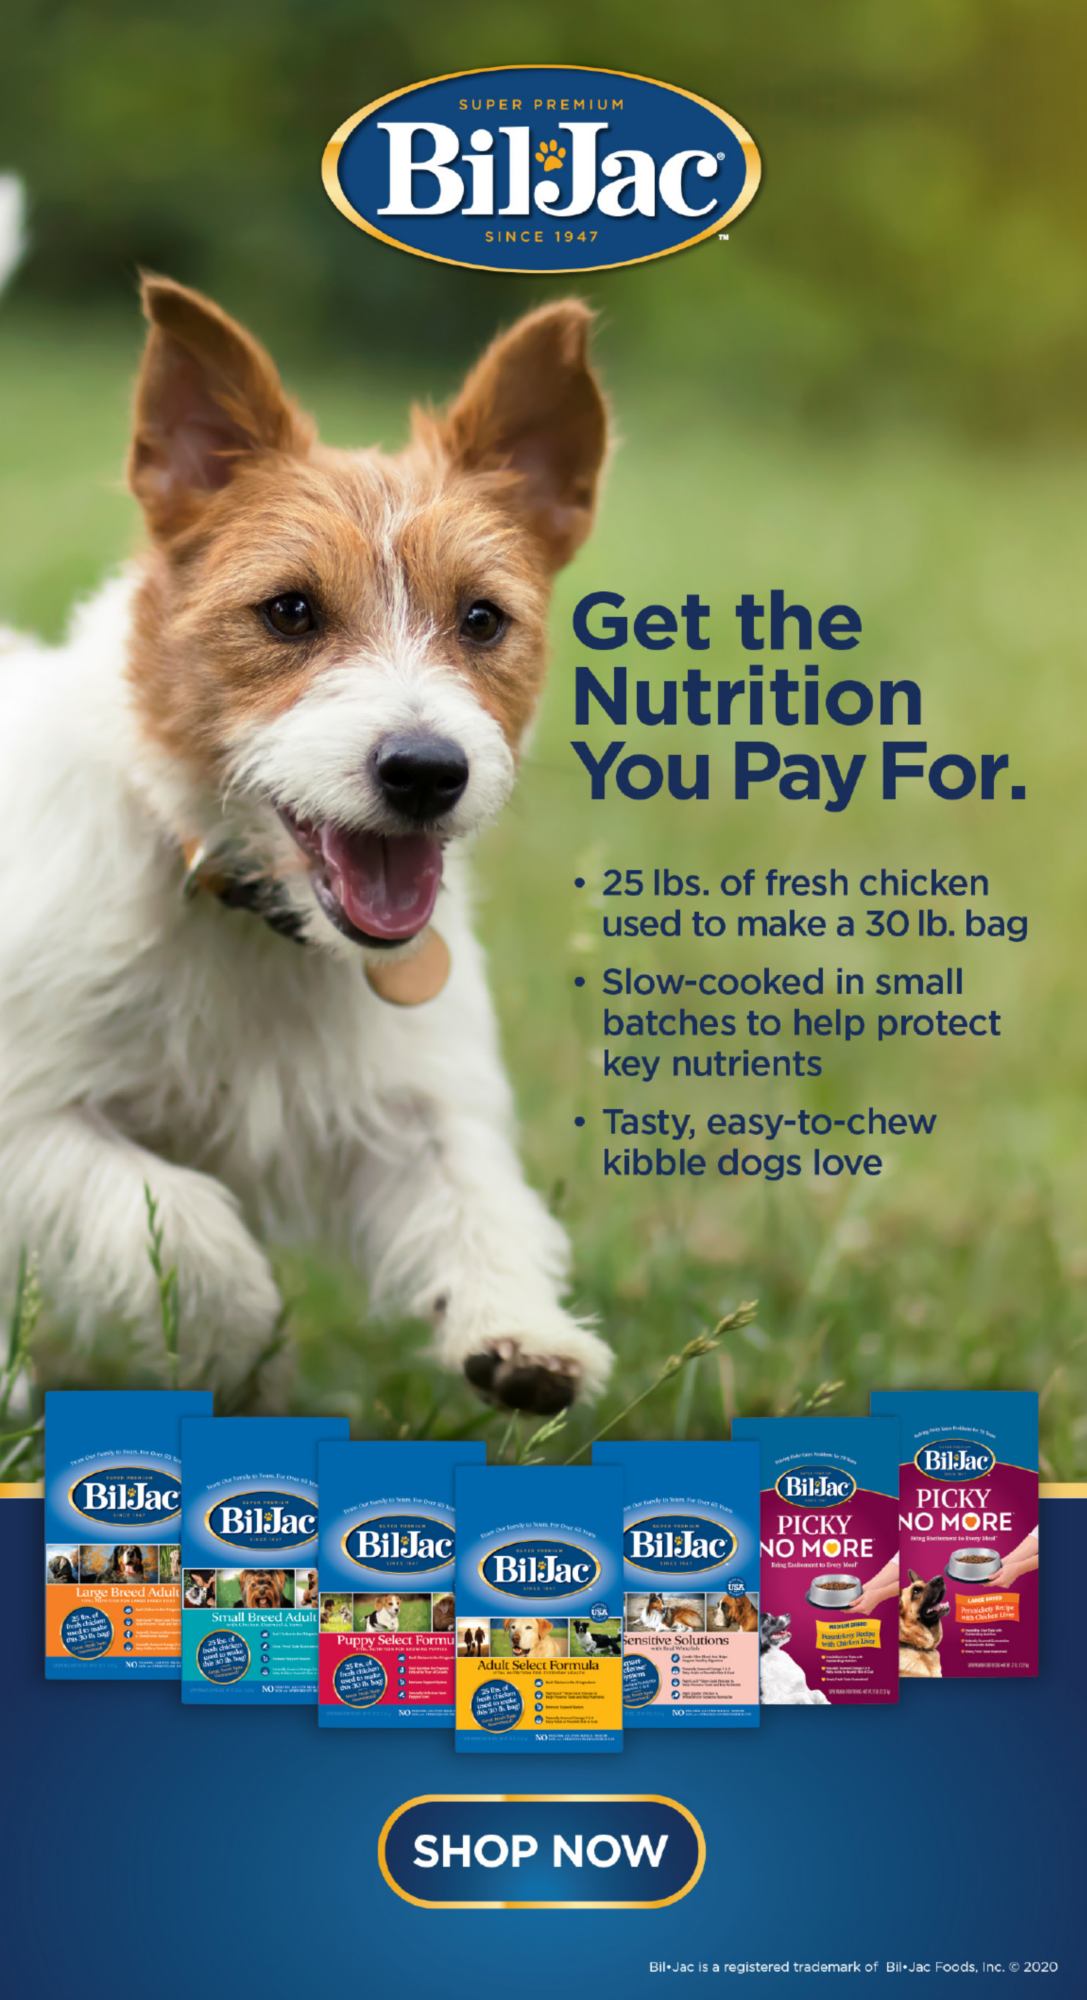 Bil Jac Get the nutrition you pay for. *25 lbs. of fresh chicken used to make a 30 lb. bag *Slow-cooke in small batches to help protect key nutrients *Tasty, easy-to-chew kibble dogs love